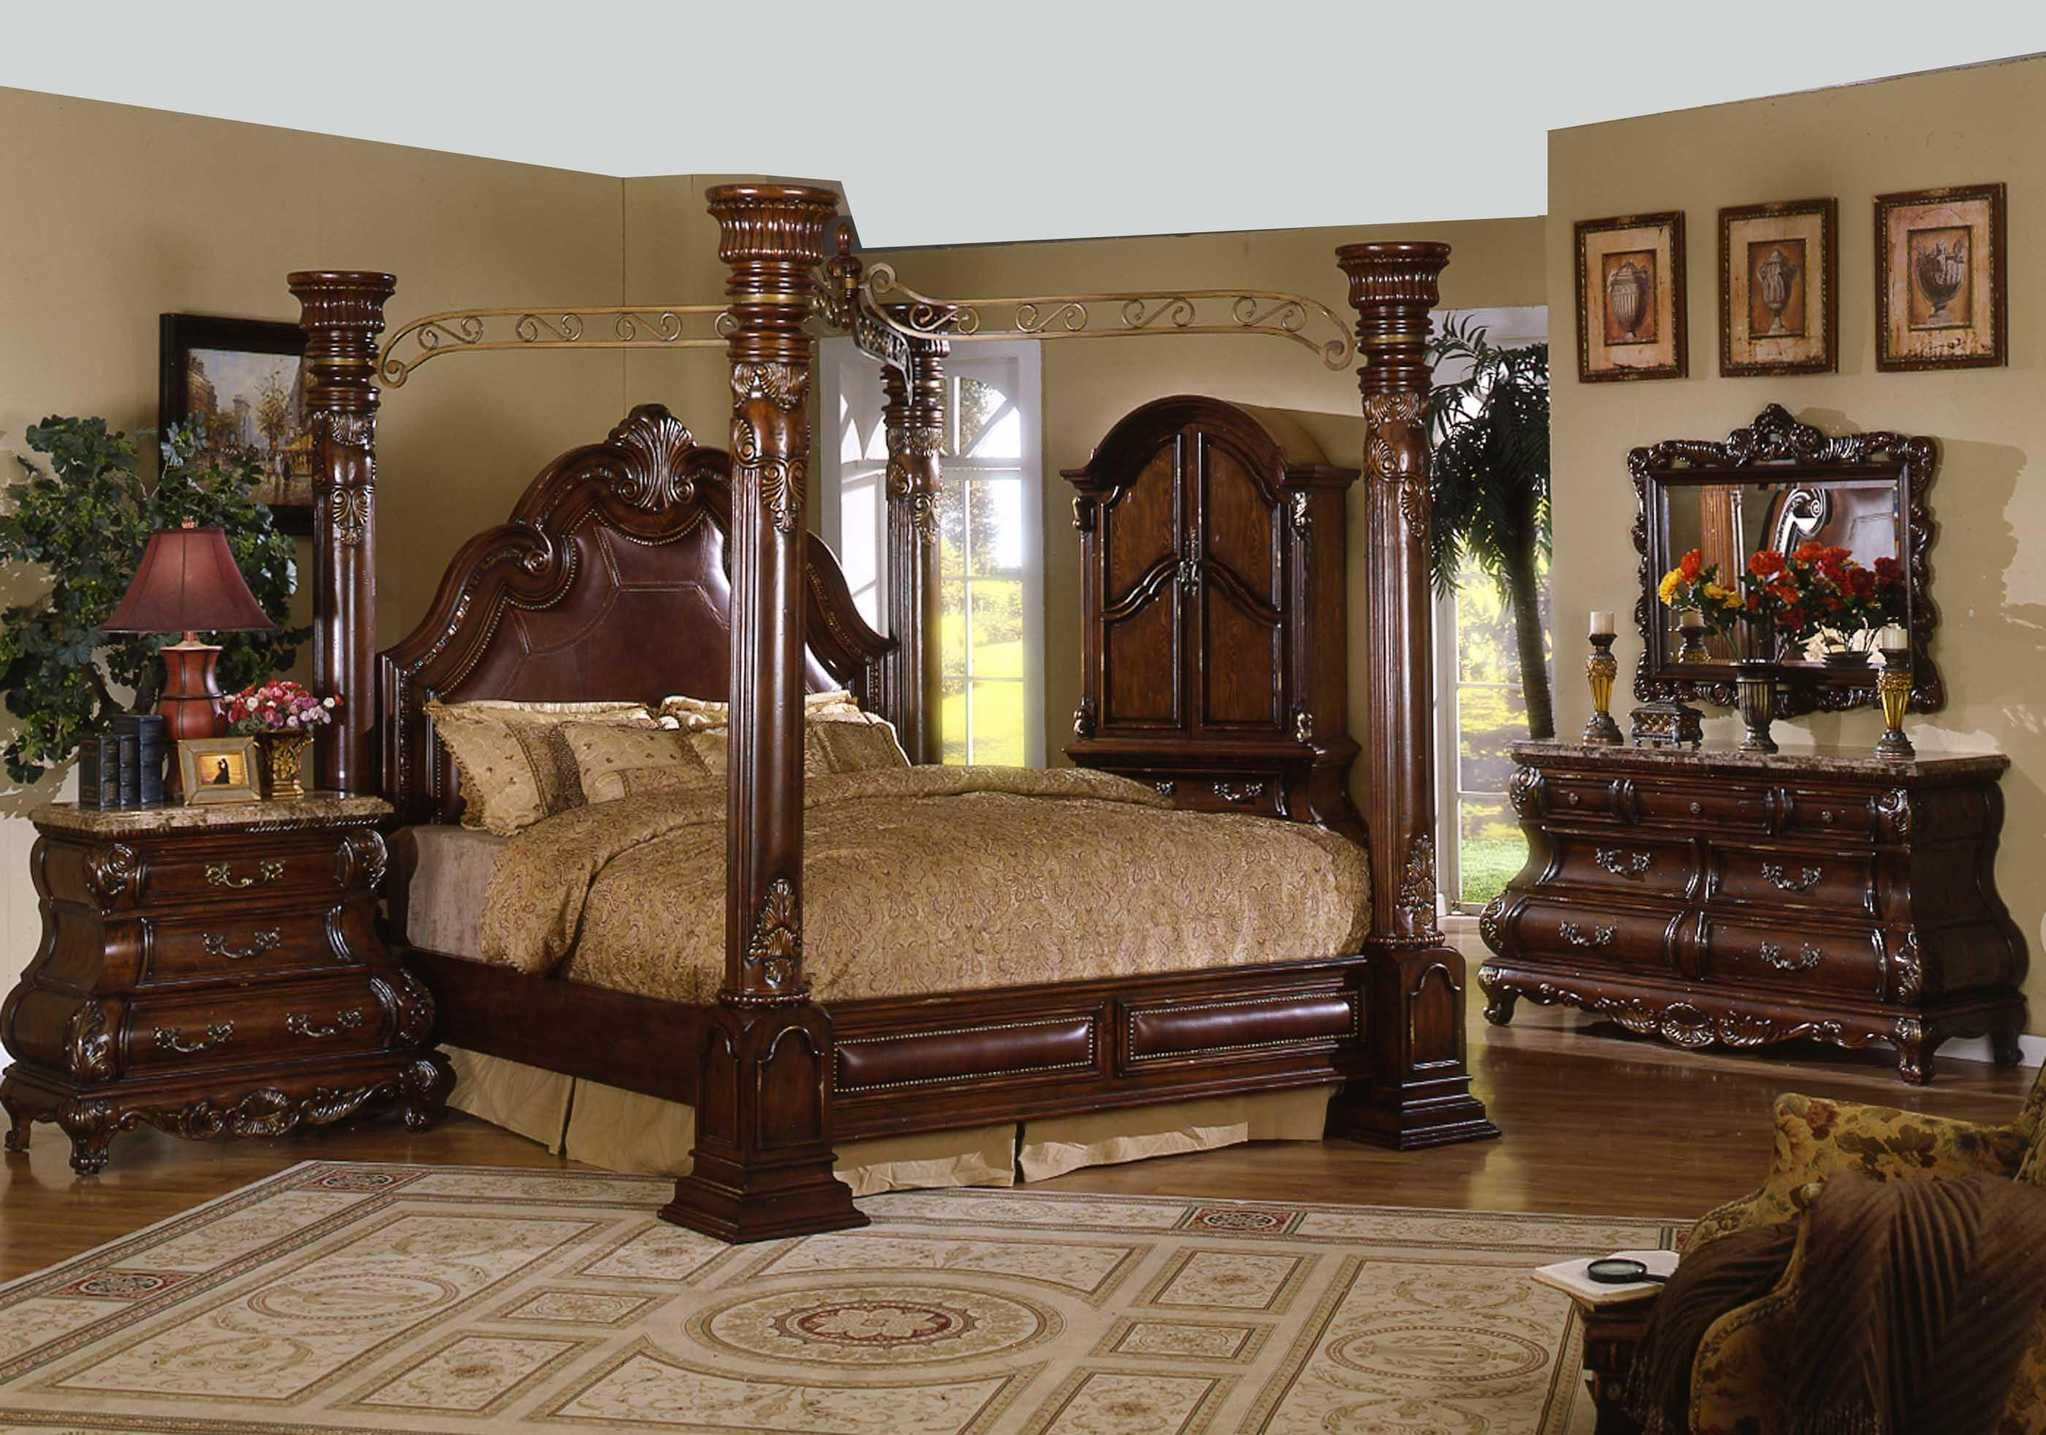 Canopy Bed   Canopy Bedroom Sets   Four Post Canopy Bed 4734. Canopy Bed   Canopy Bedroom Sets   Four Post Canopy Bed 4734